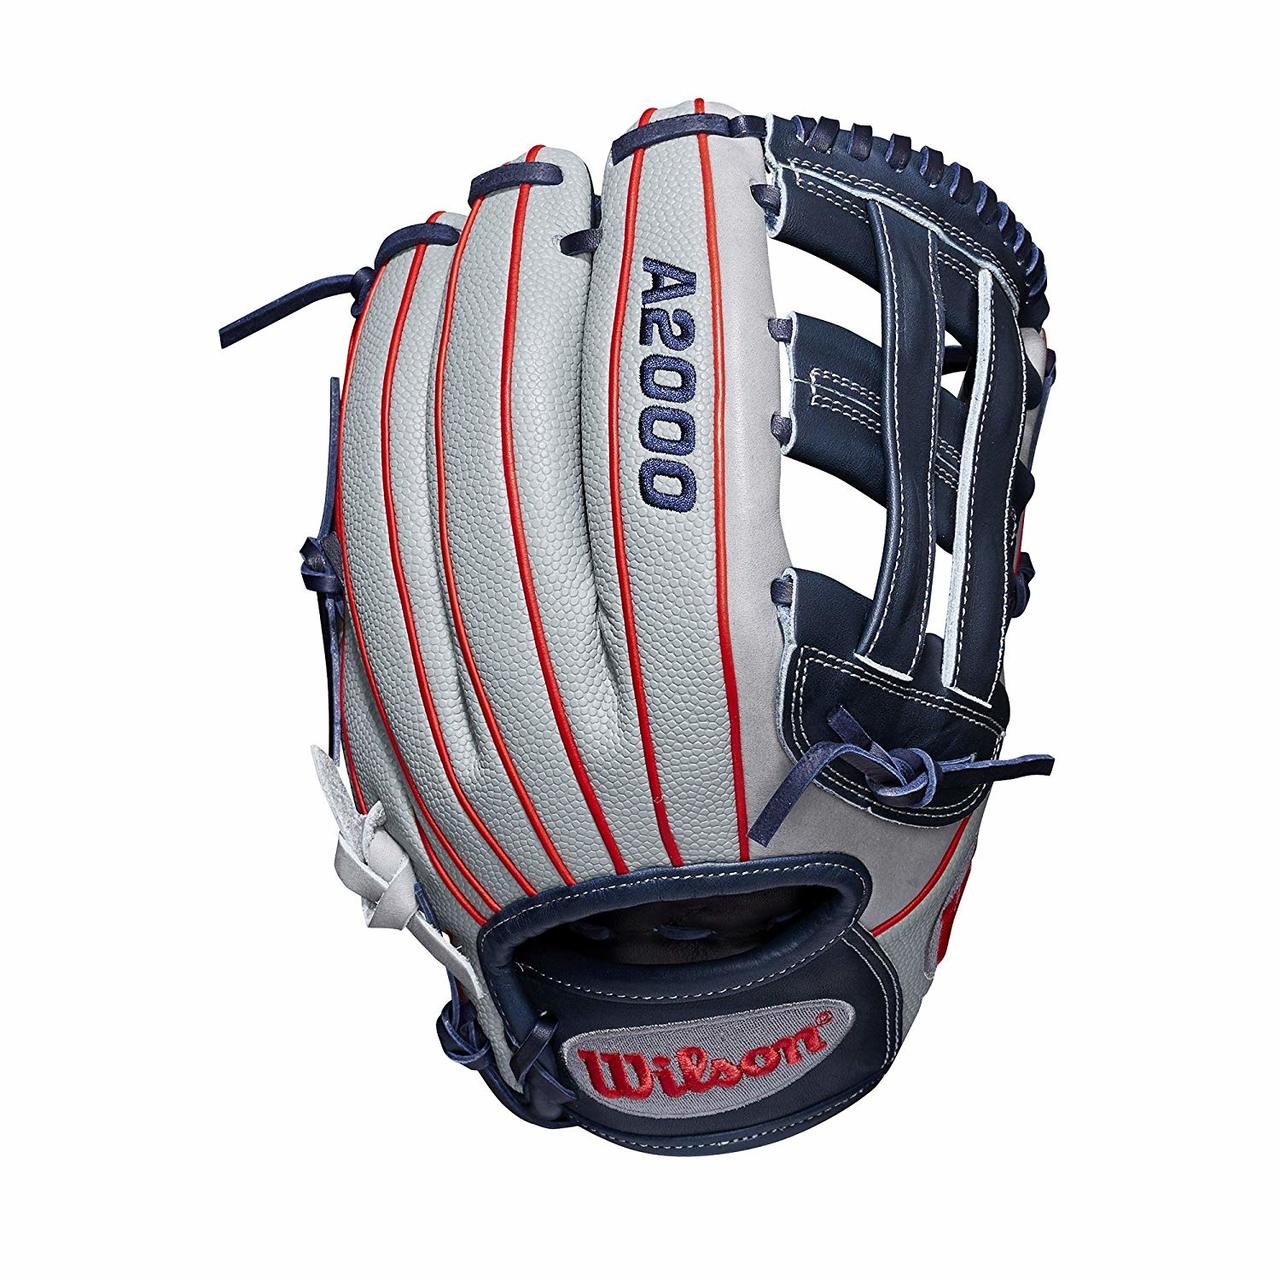 wilson-a2000-fasptich-softball-glove-sierra-romero-12-inch-right-hand-throw WTA20RF19SR32GM-RightHandThrow Wilson 887768732233 12 infield glove Dual post web Grey SuperSkin twice as strong